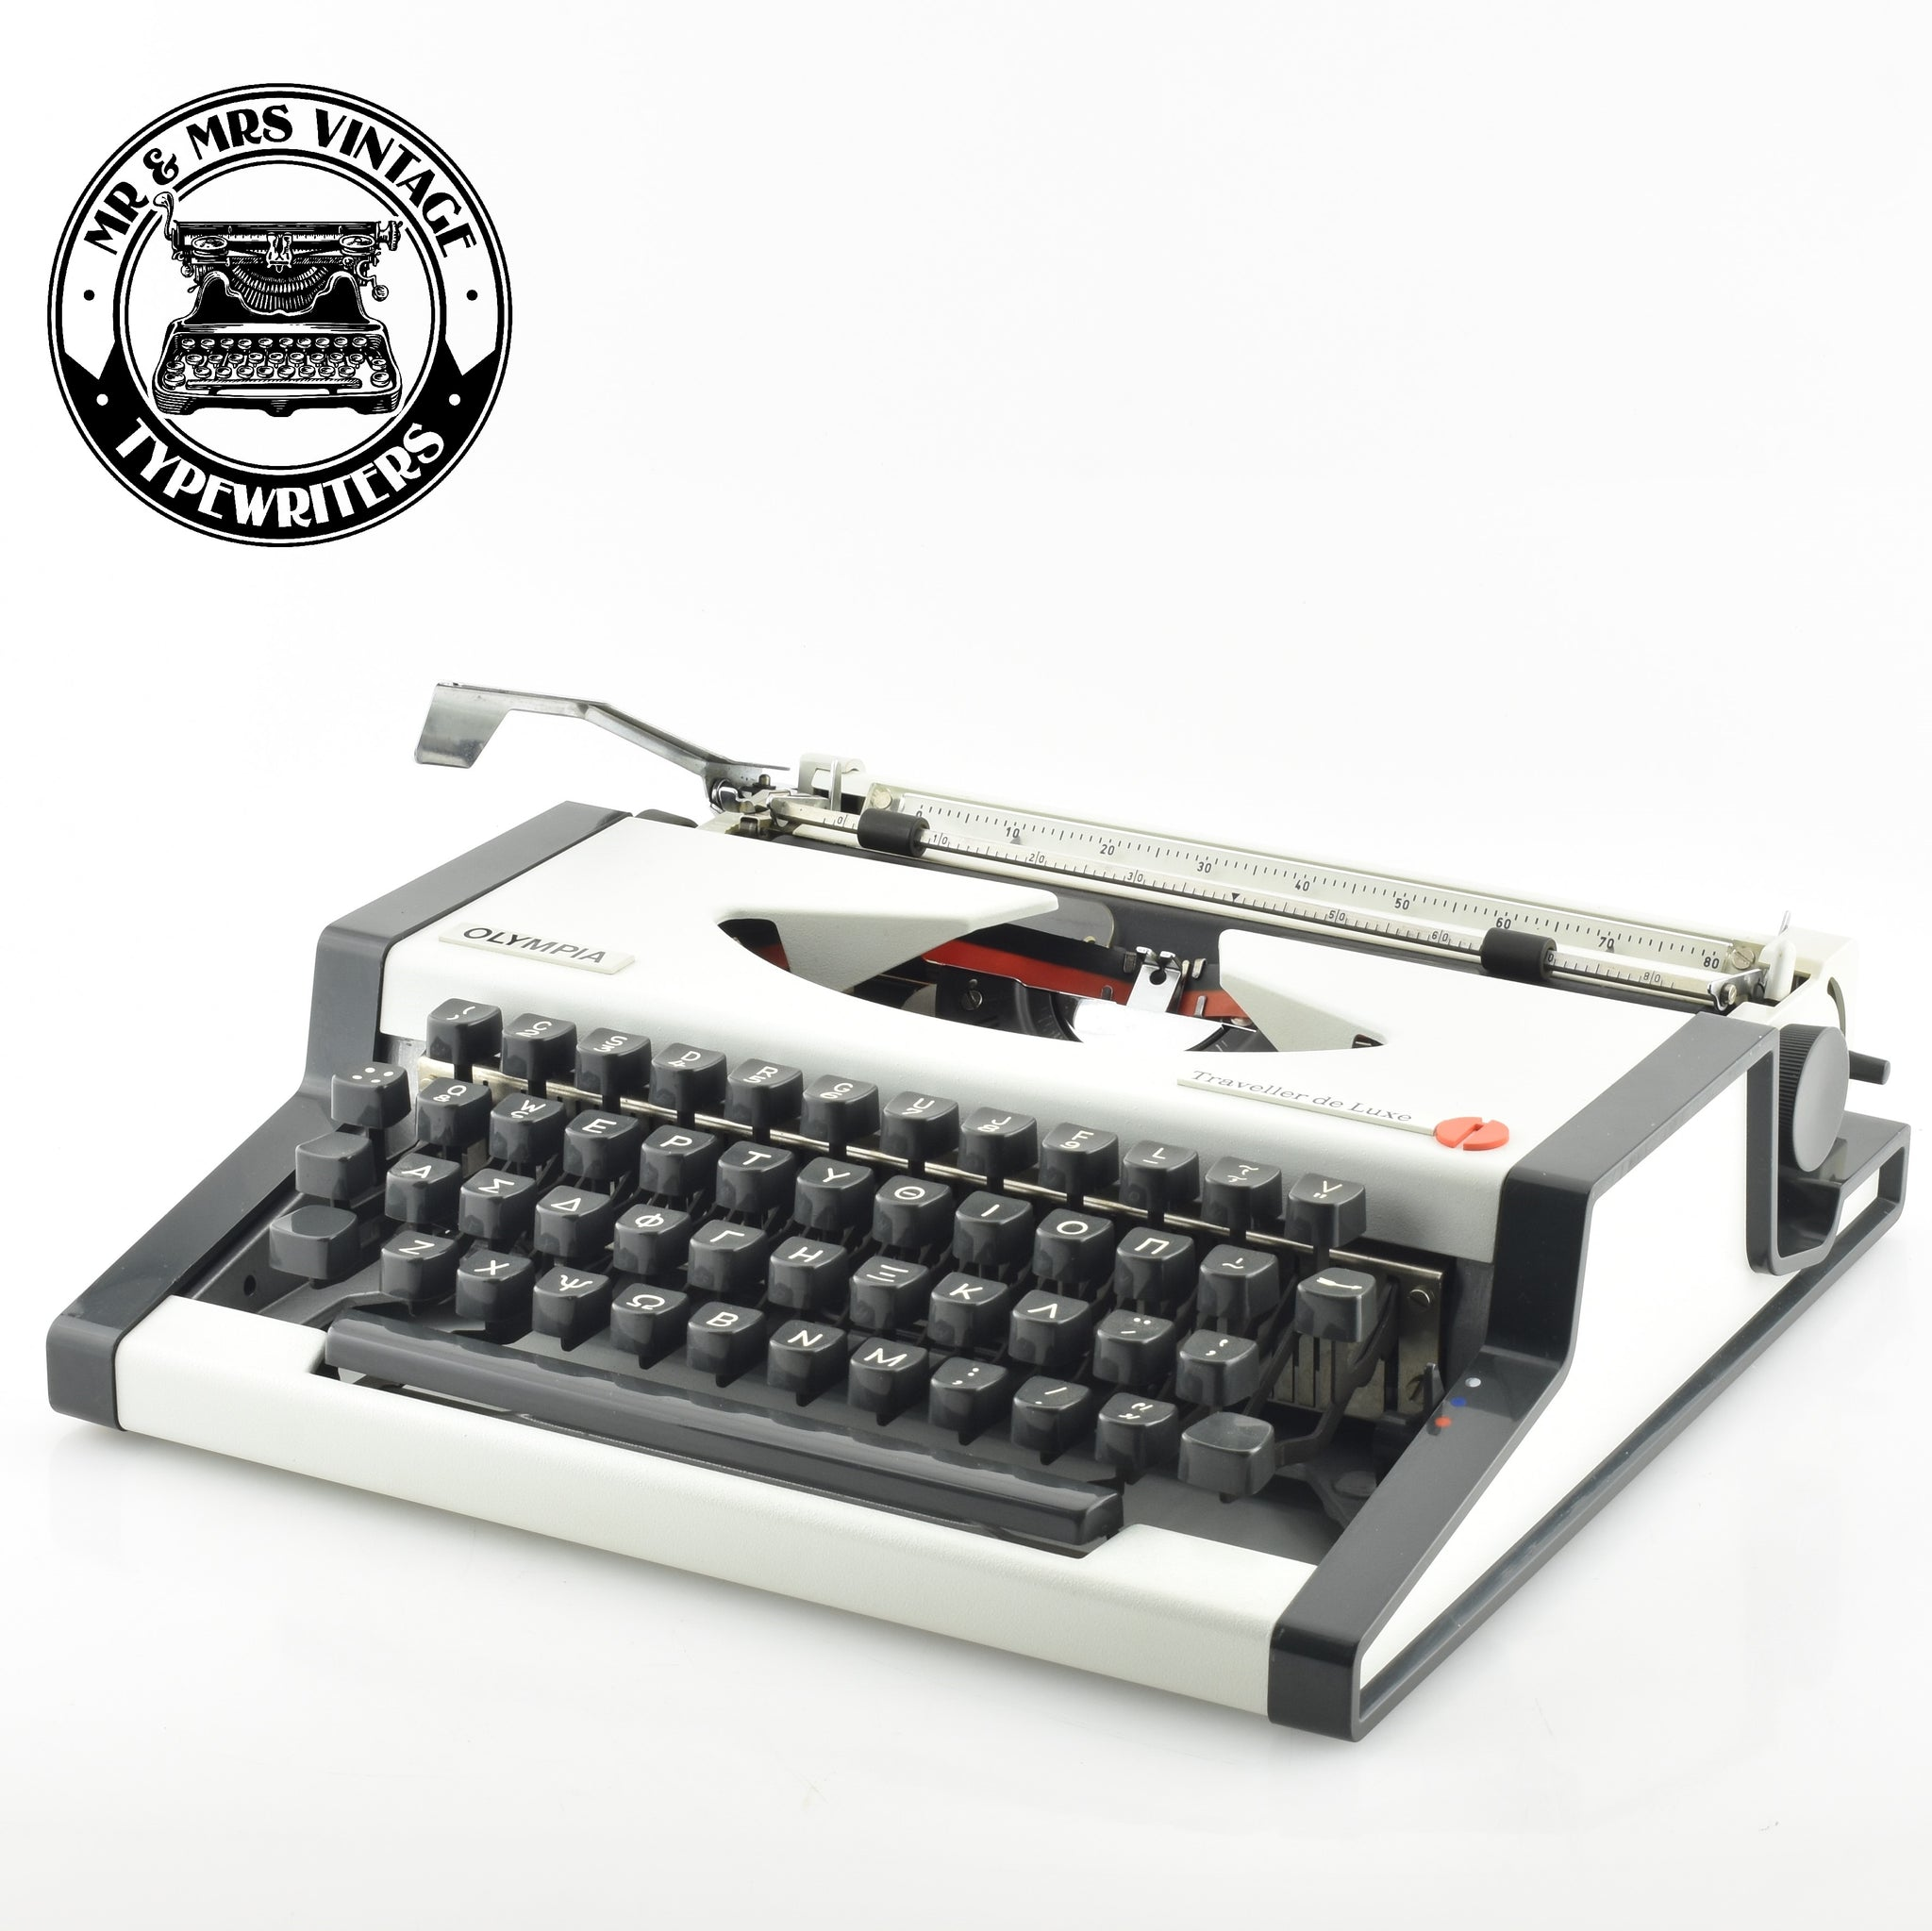 "Olympia Traveller Deluxe Typewriter ""Greek Keyboard"""